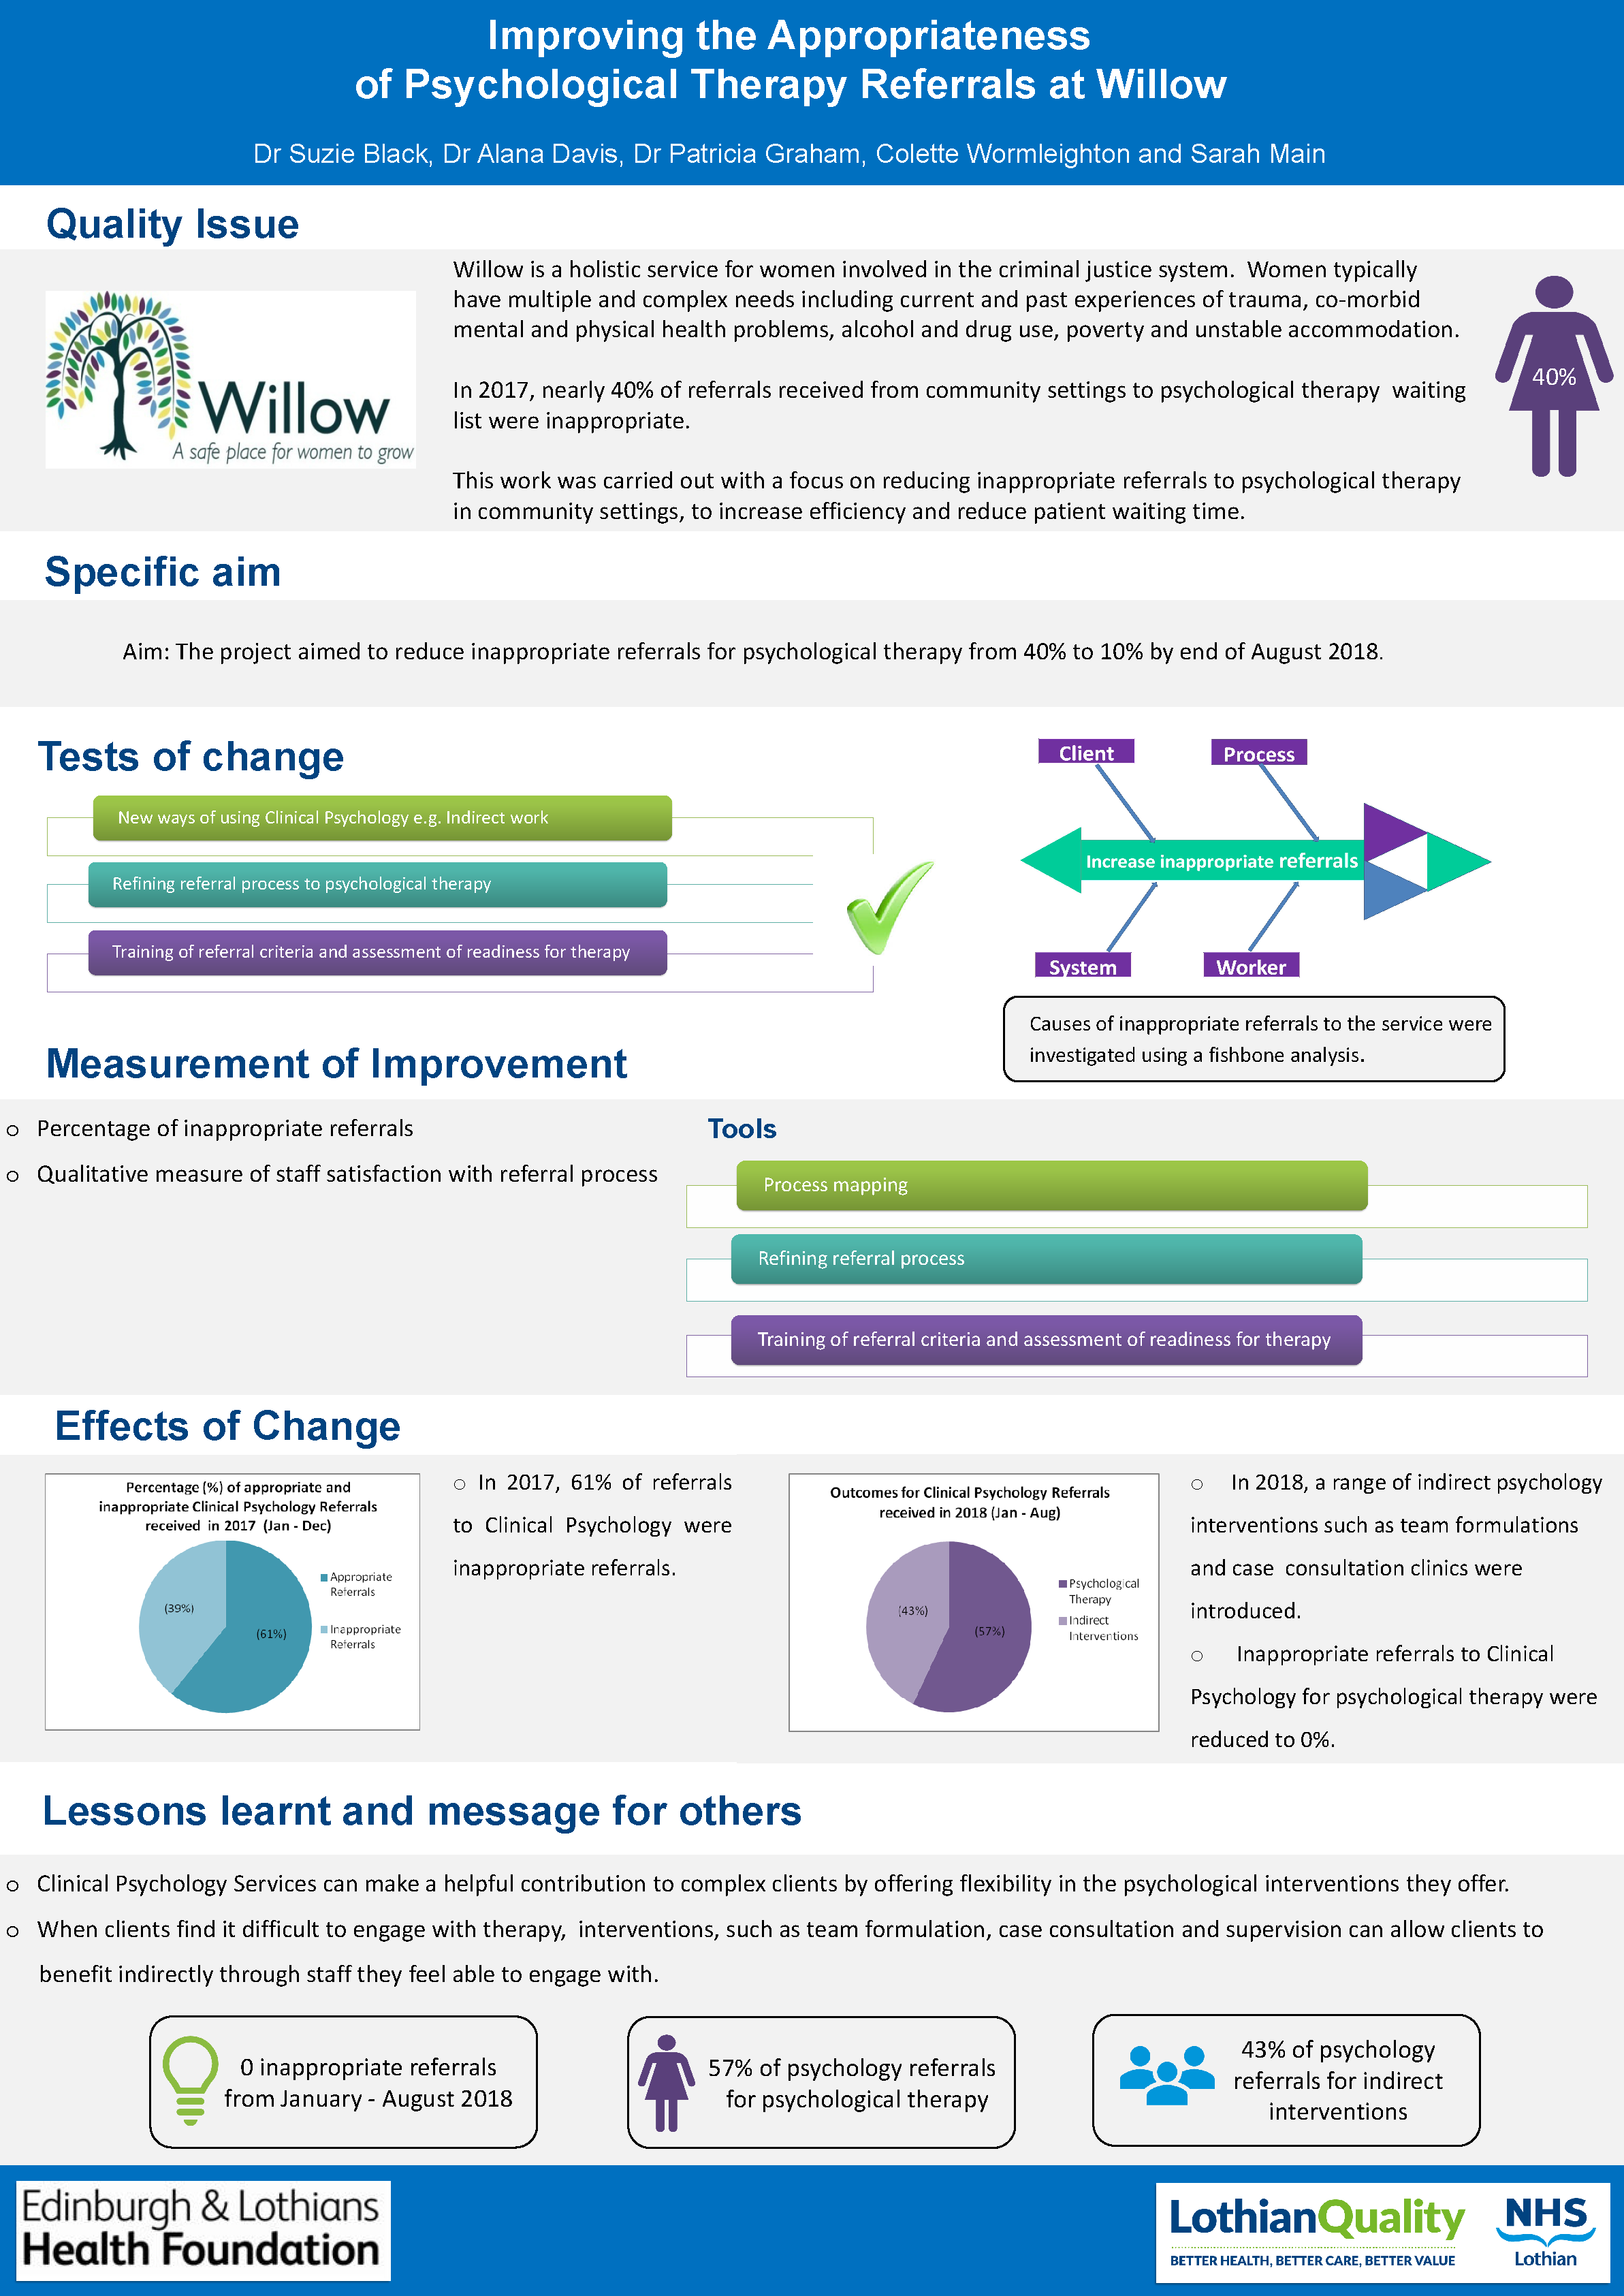 Improving the appropriateness of psychological therapy referrals at Willow